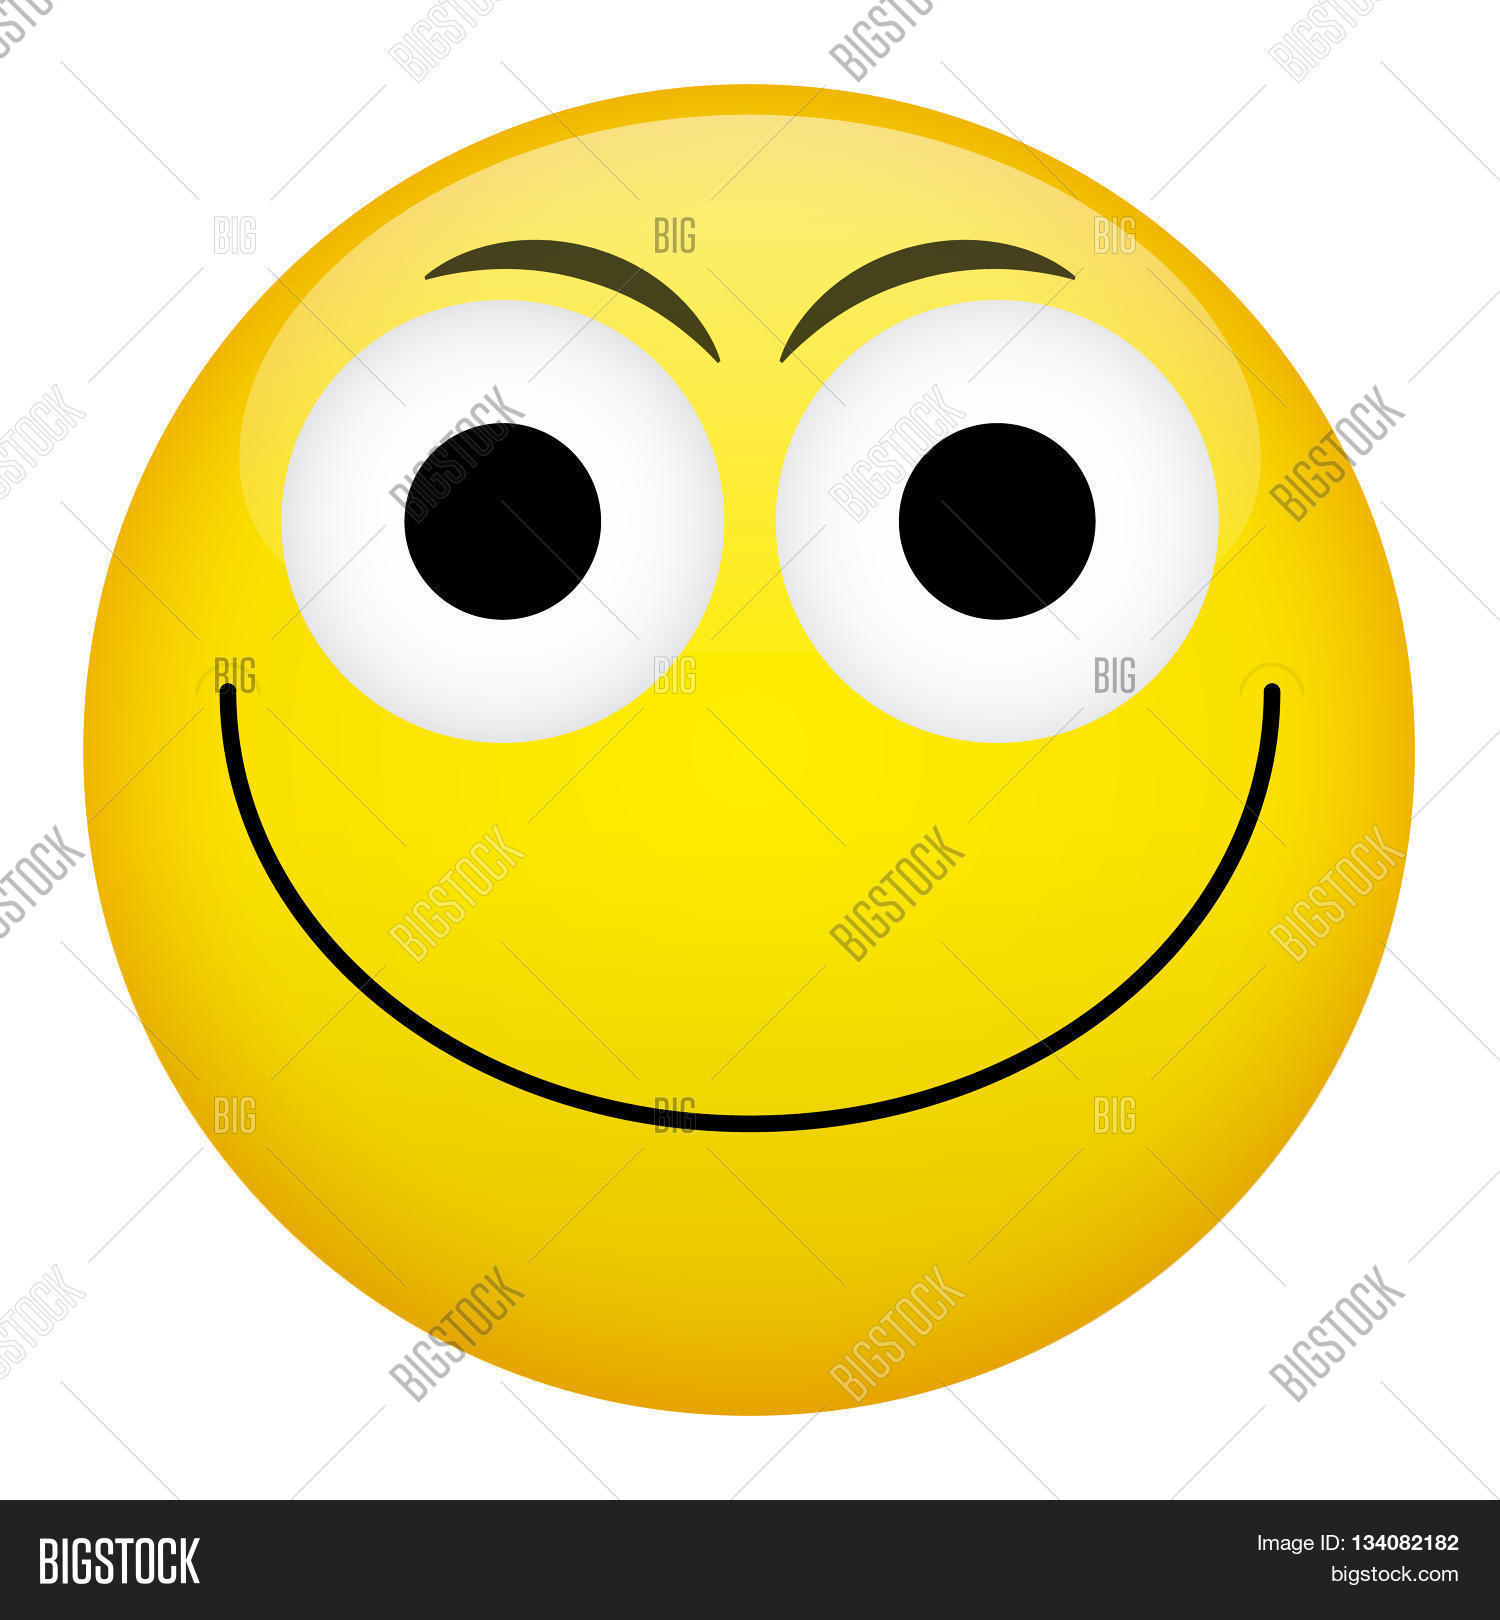 Smile Laugh Frown Image & Photo (Free Trial) | Bigstock